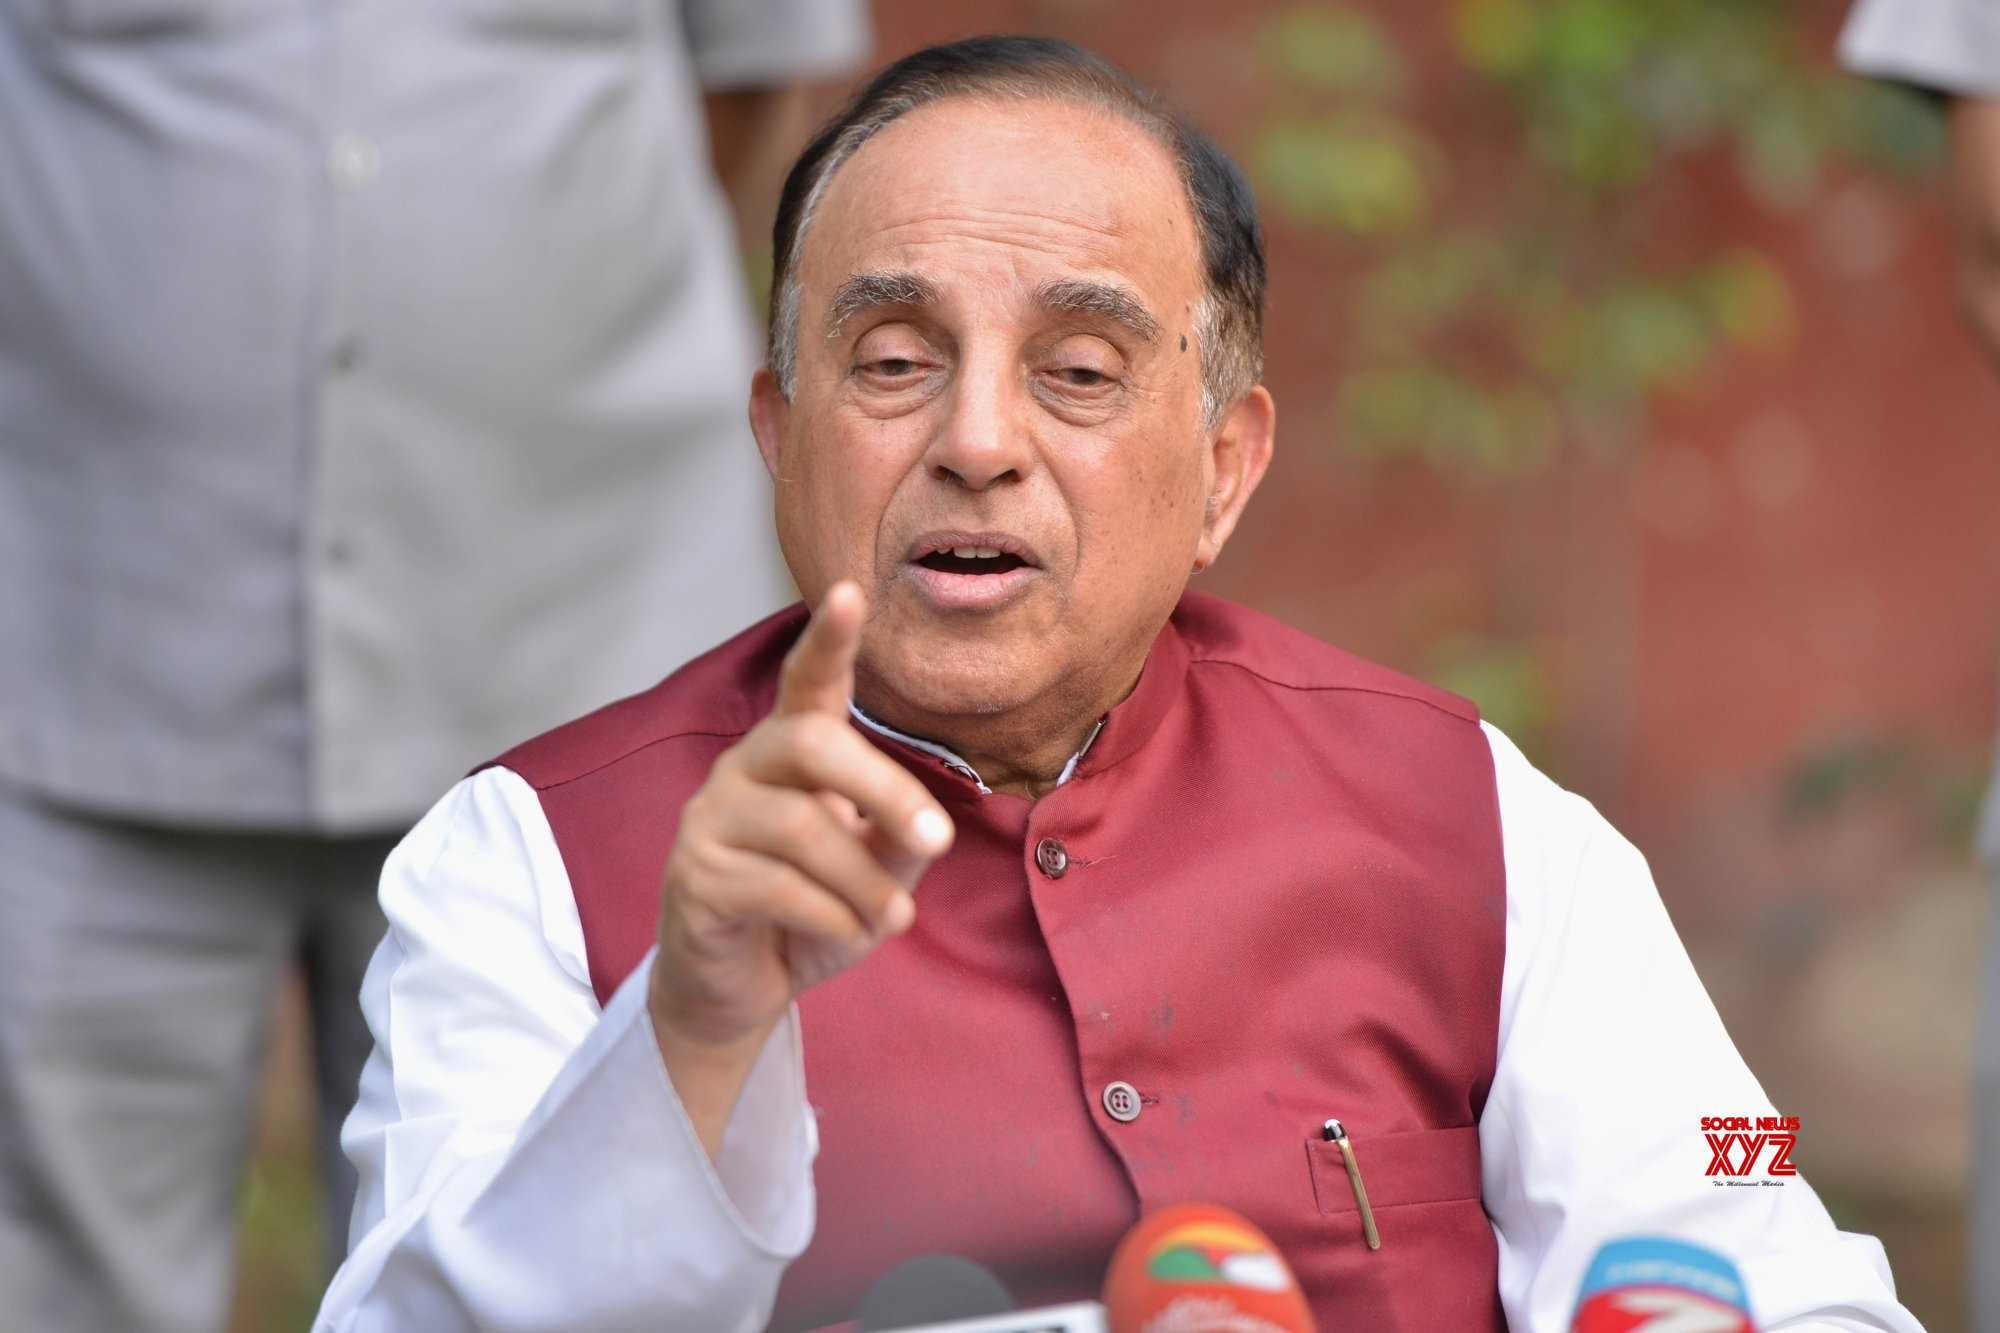 BJP's Swamy to drag UN official to court over Muslim 'comment' row